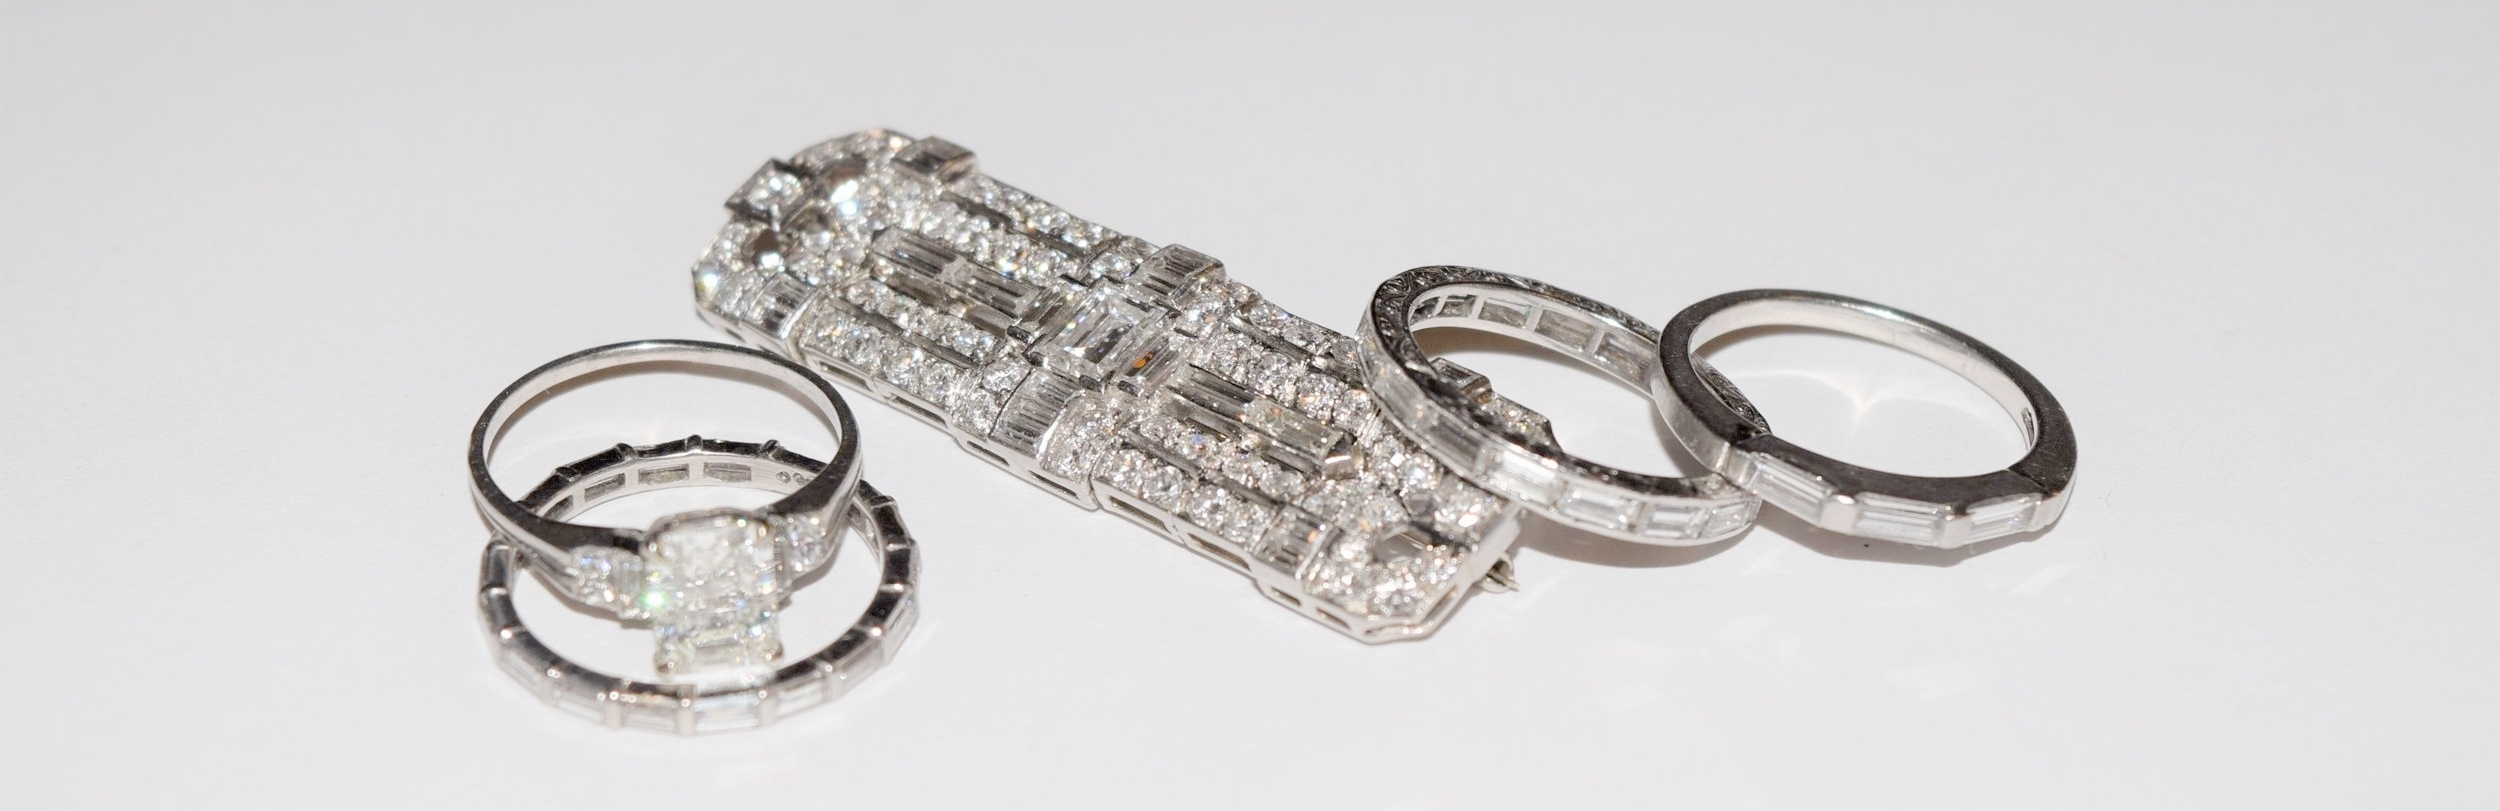 Antique and vintage baguette diamond jewelry at Gray & Davis